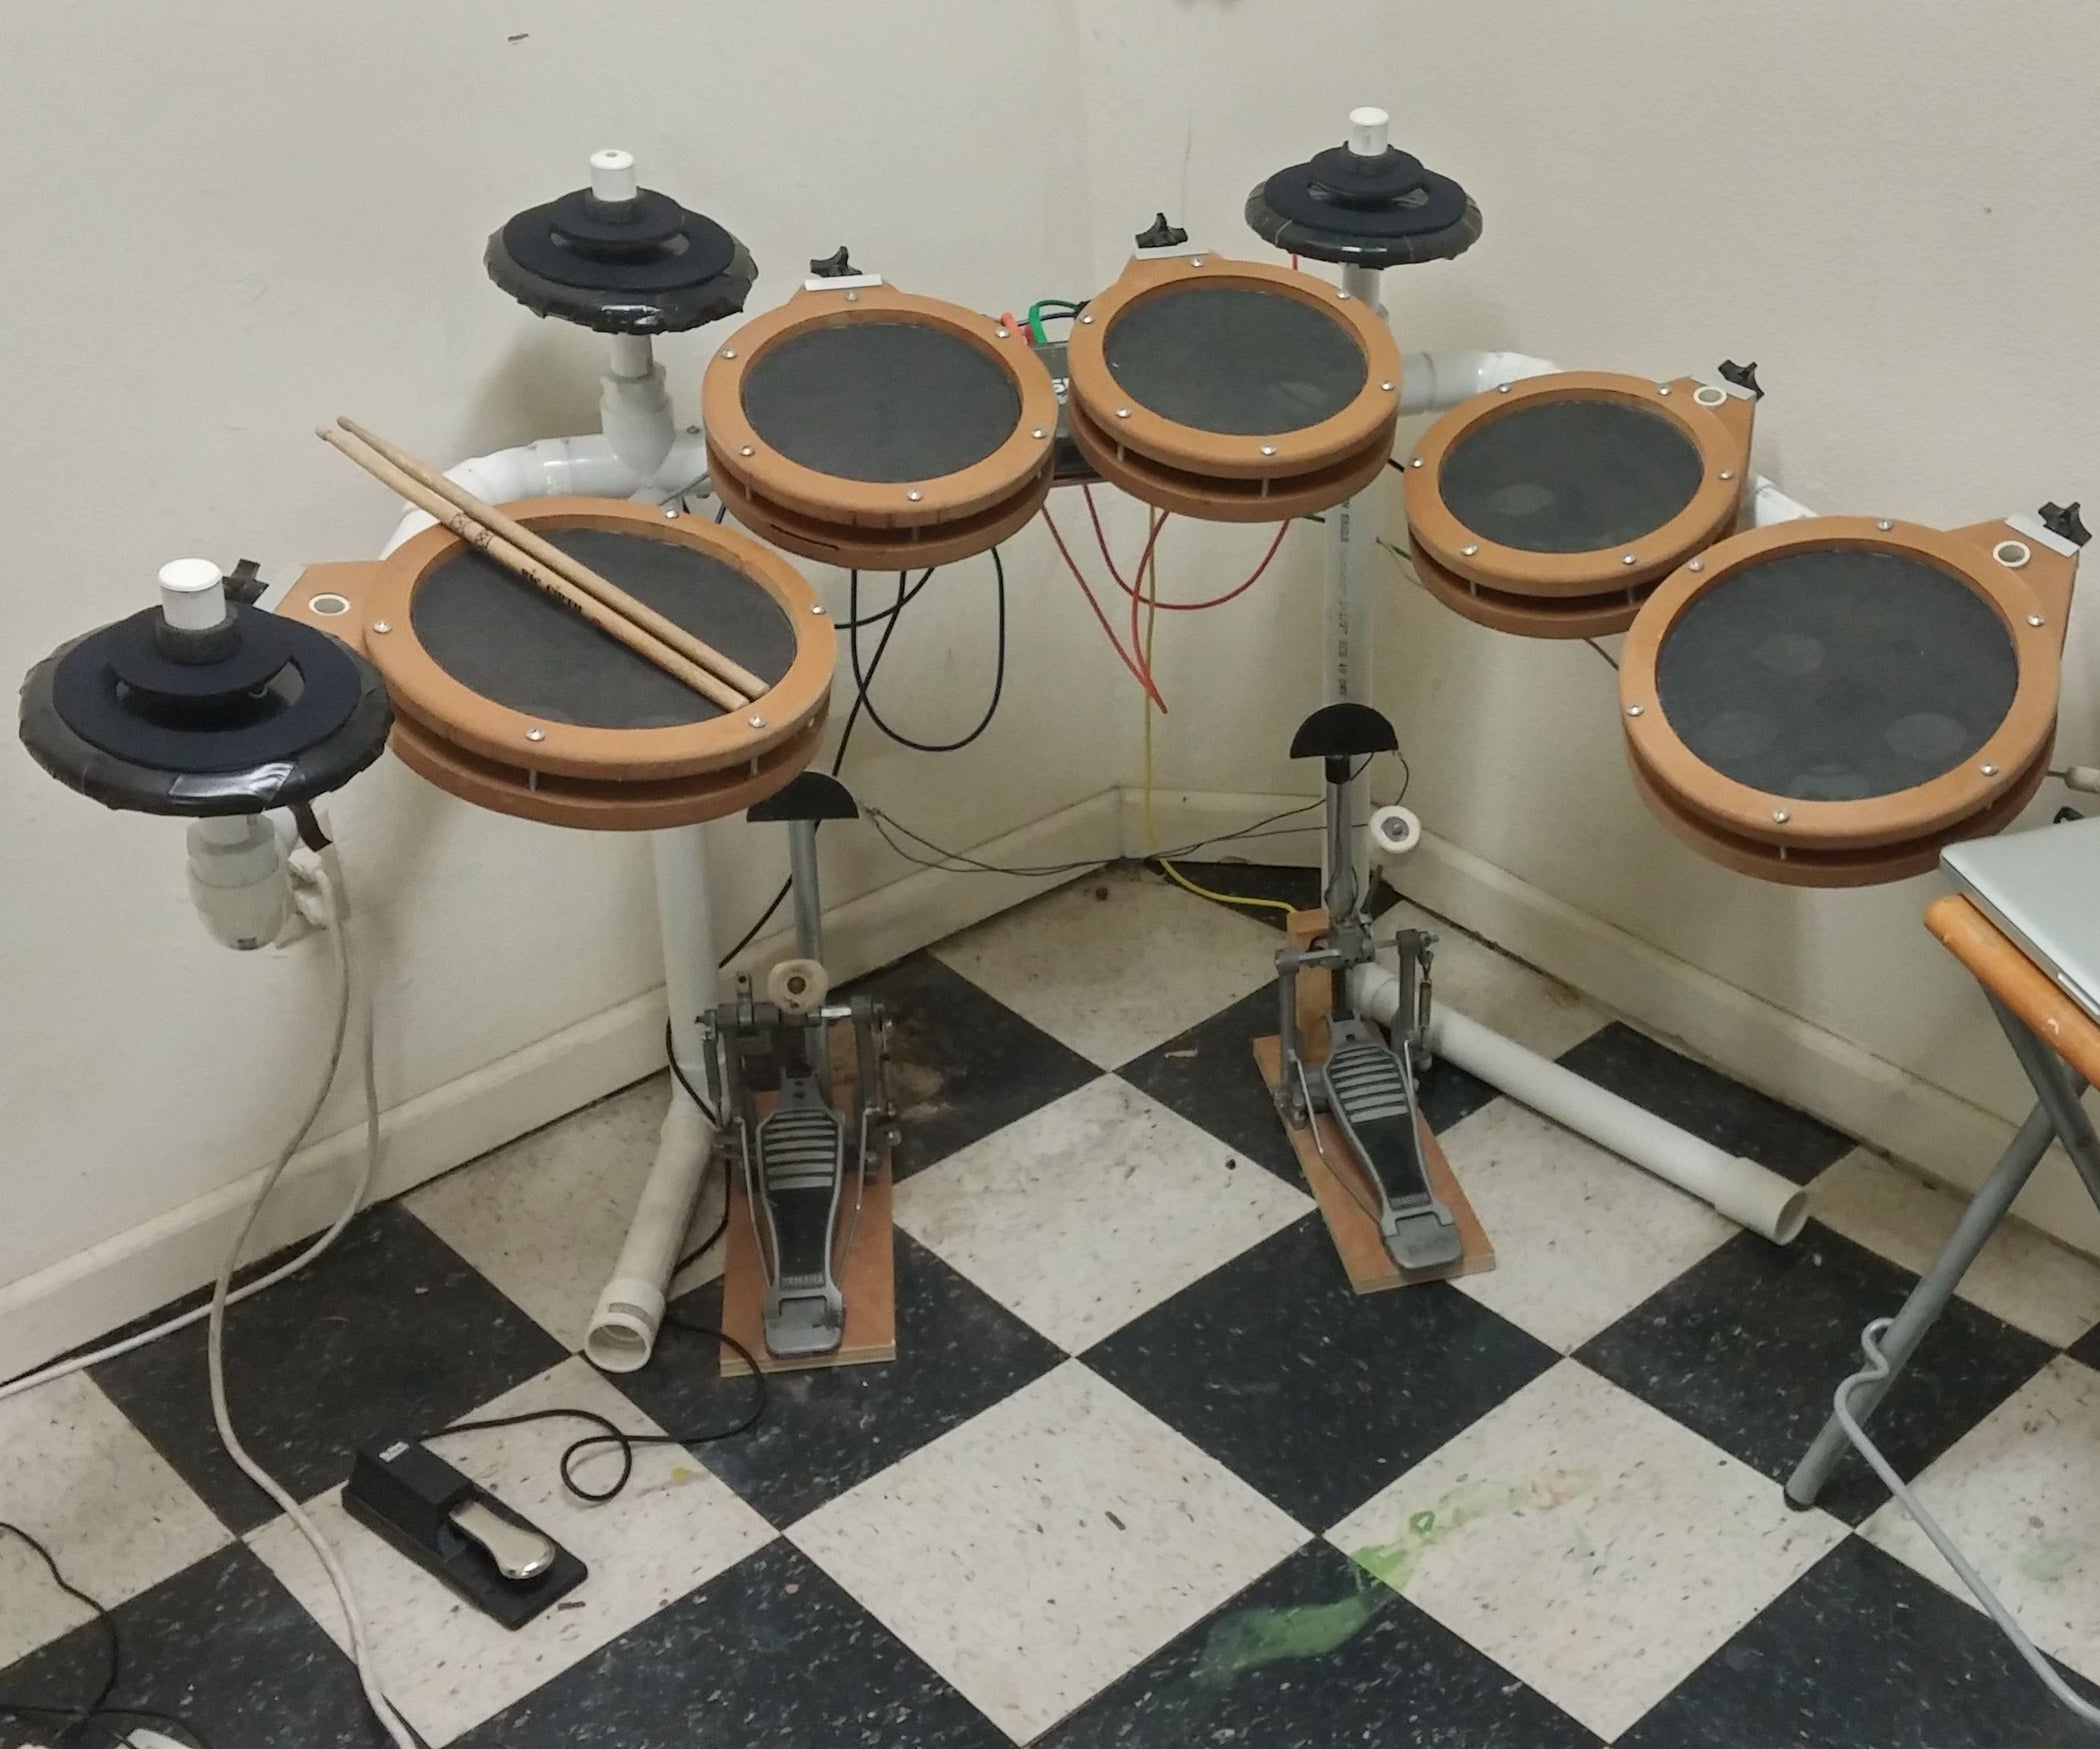 Homemade Electronic Drum Kit 7 Steps With Pictures Wwwhomemadeelectronicscom